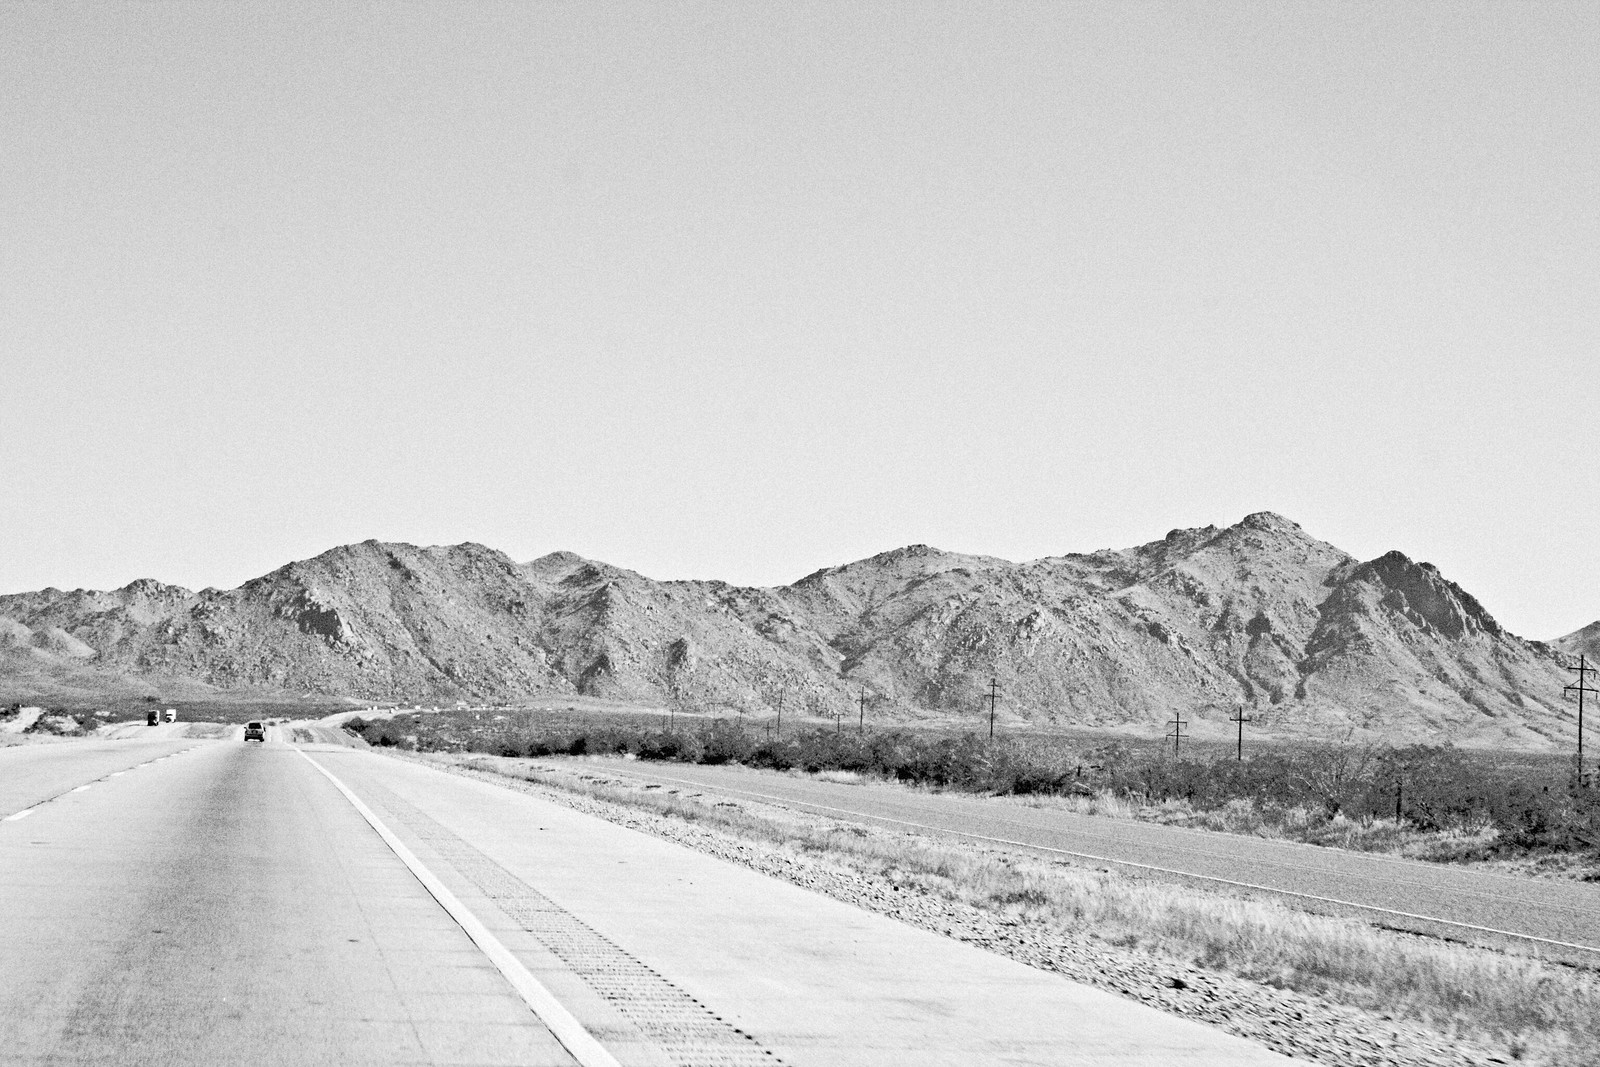 Interstate 10 and Mountains, West Texas, 2006